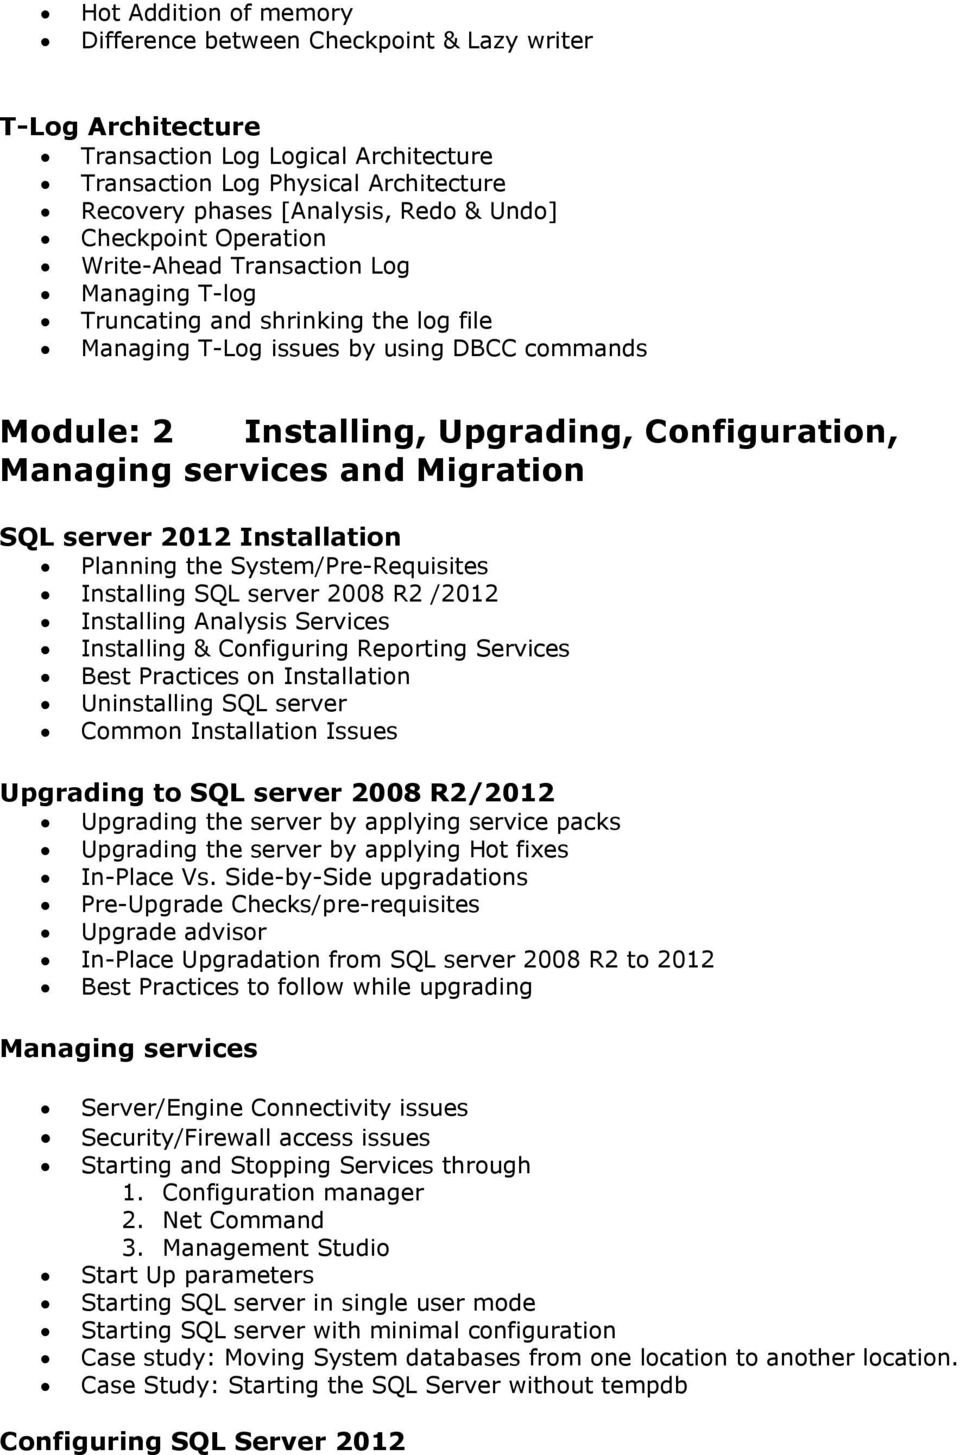 Configuration, Managing services and Migration SQL server 2012 Installation Planning the System/Pre-Requisites Installing SQL server 2008 R2 /2012 Installing Analysis Services Installing &